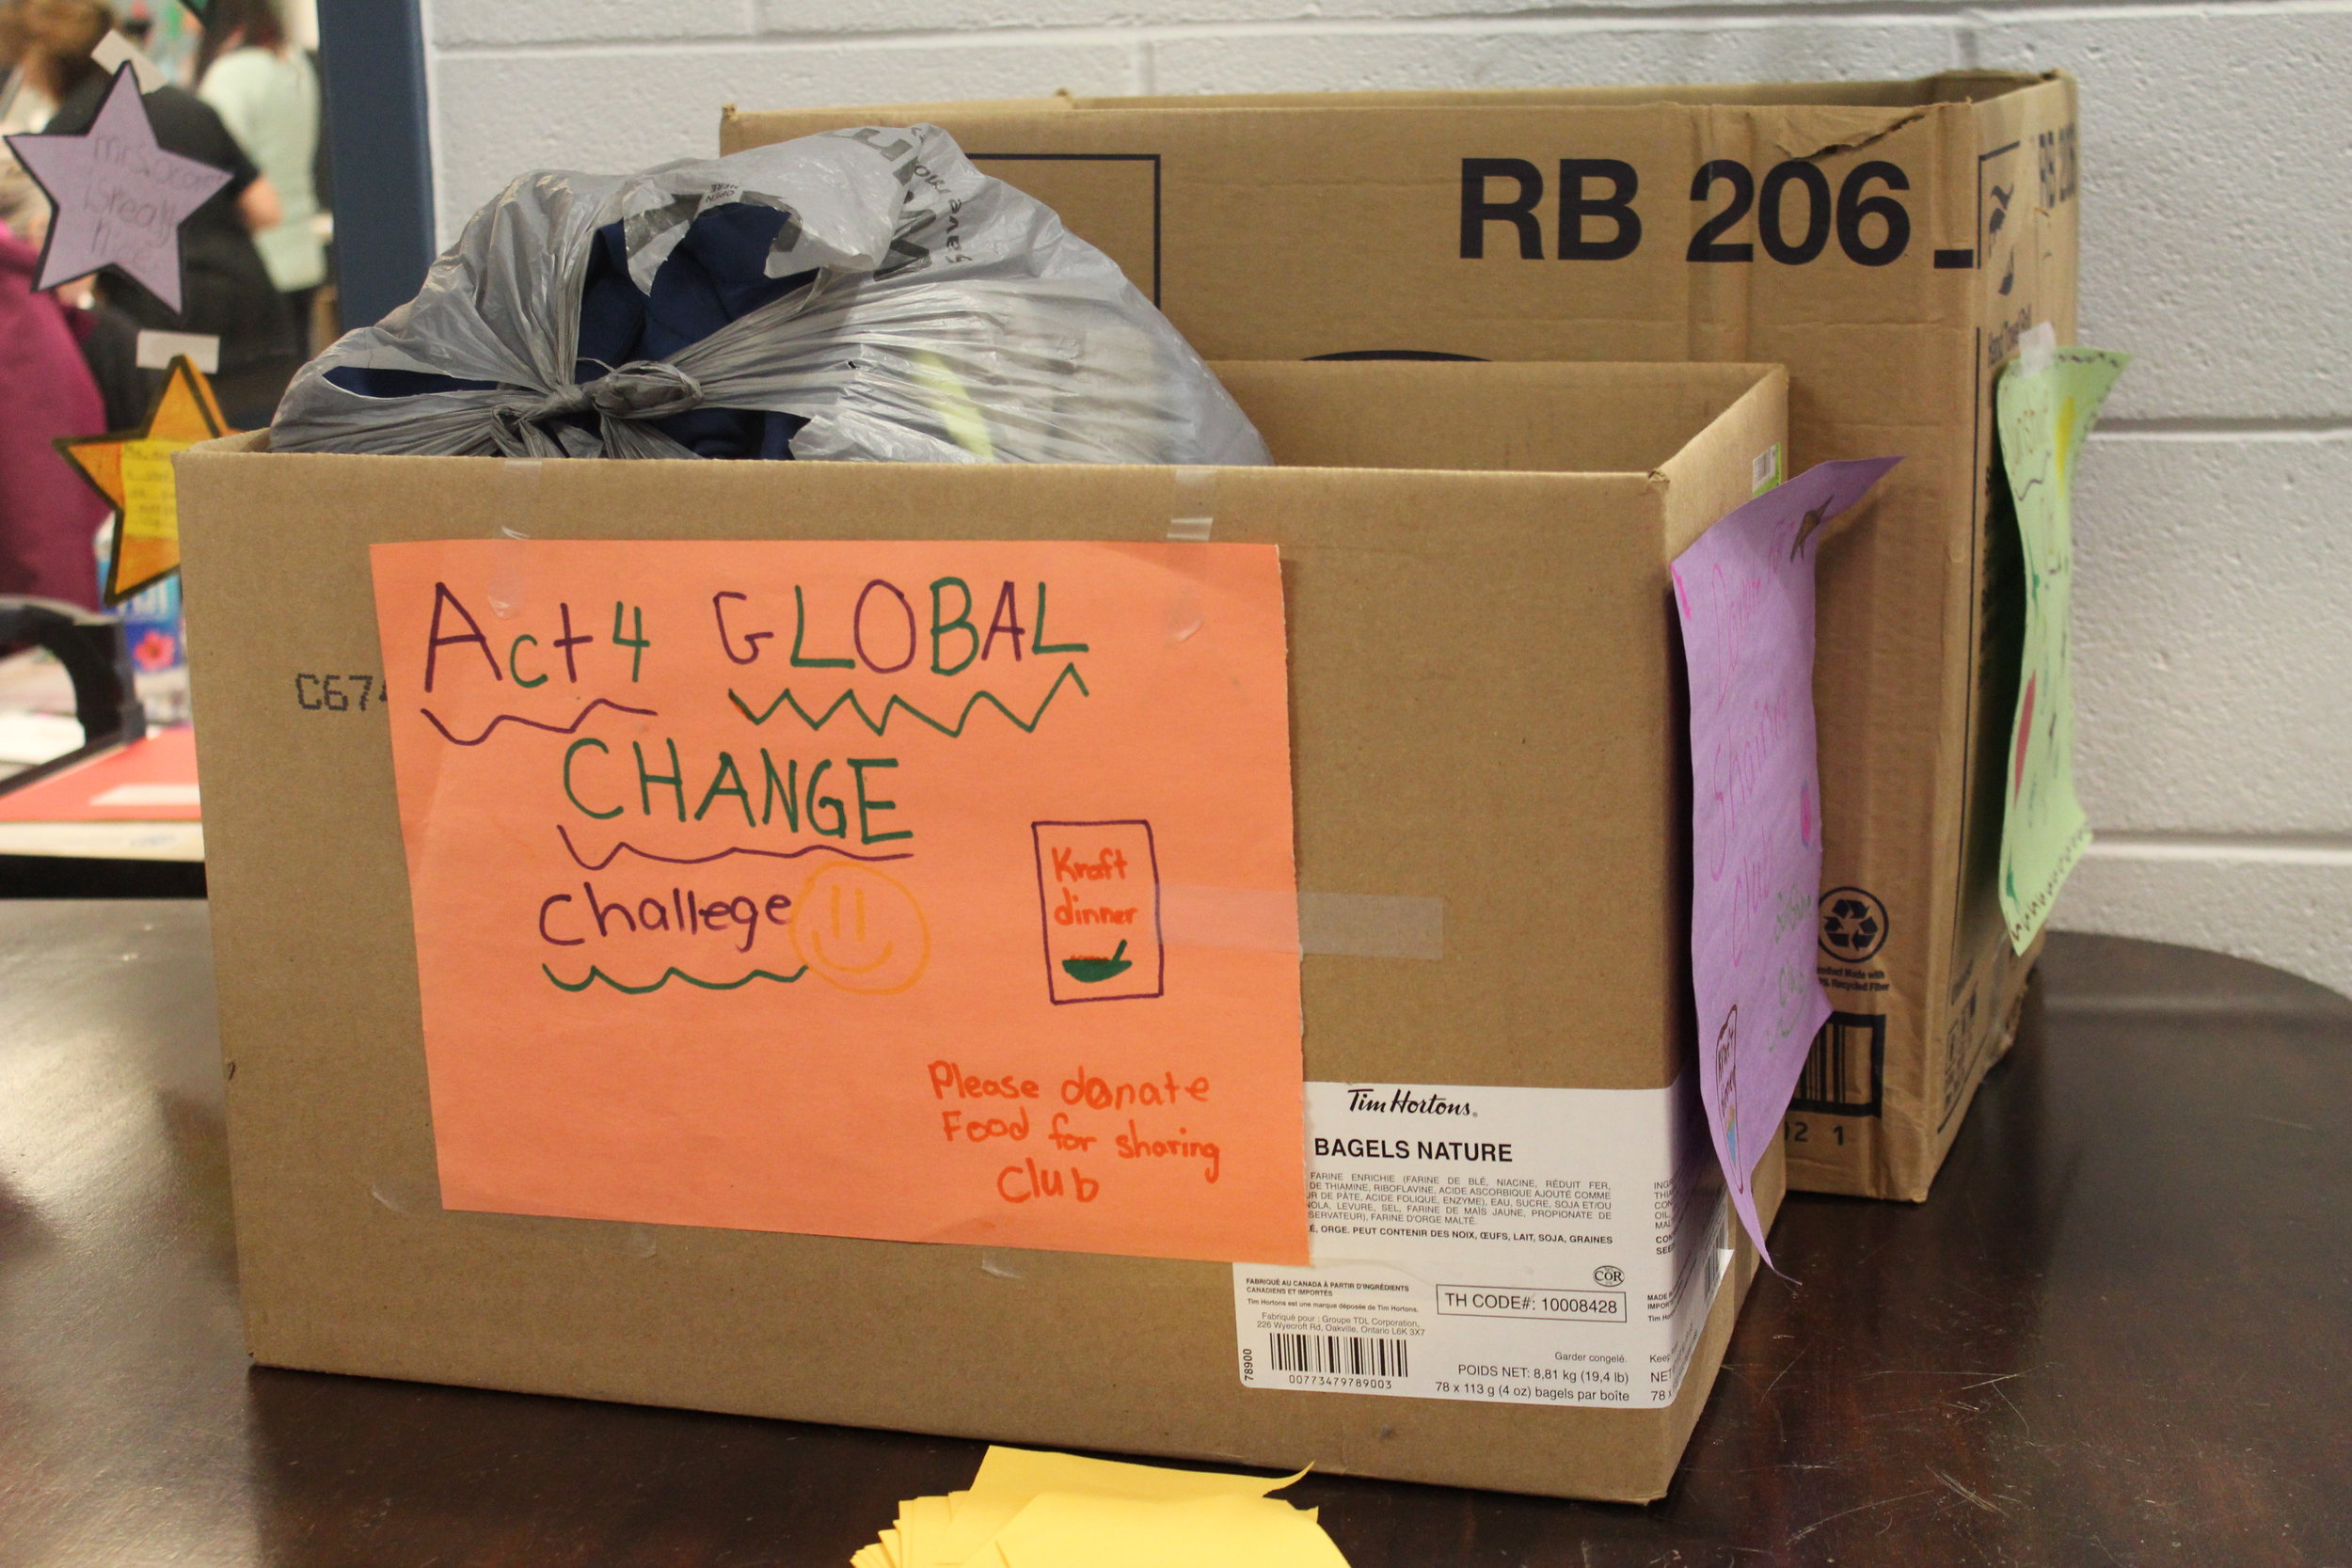 We have placed several boxes in the front lobby that we are now collecting for our local Sharing Club (food and clothing). The students will be bringing in non-perishable food items until the end of the month and slightly used clothing. We will then be delivering to the Sharing club, on behalf of our school and Sunshine Club! We want to show our community that we can make a difference! Our Sunshine Club decorated the boxes and are doing guest spots on the morning announcements to remind students of this initiative!  Helping to support our community needs. Our students are learning various ways they can help support our community and reach outside of the school setting to help!